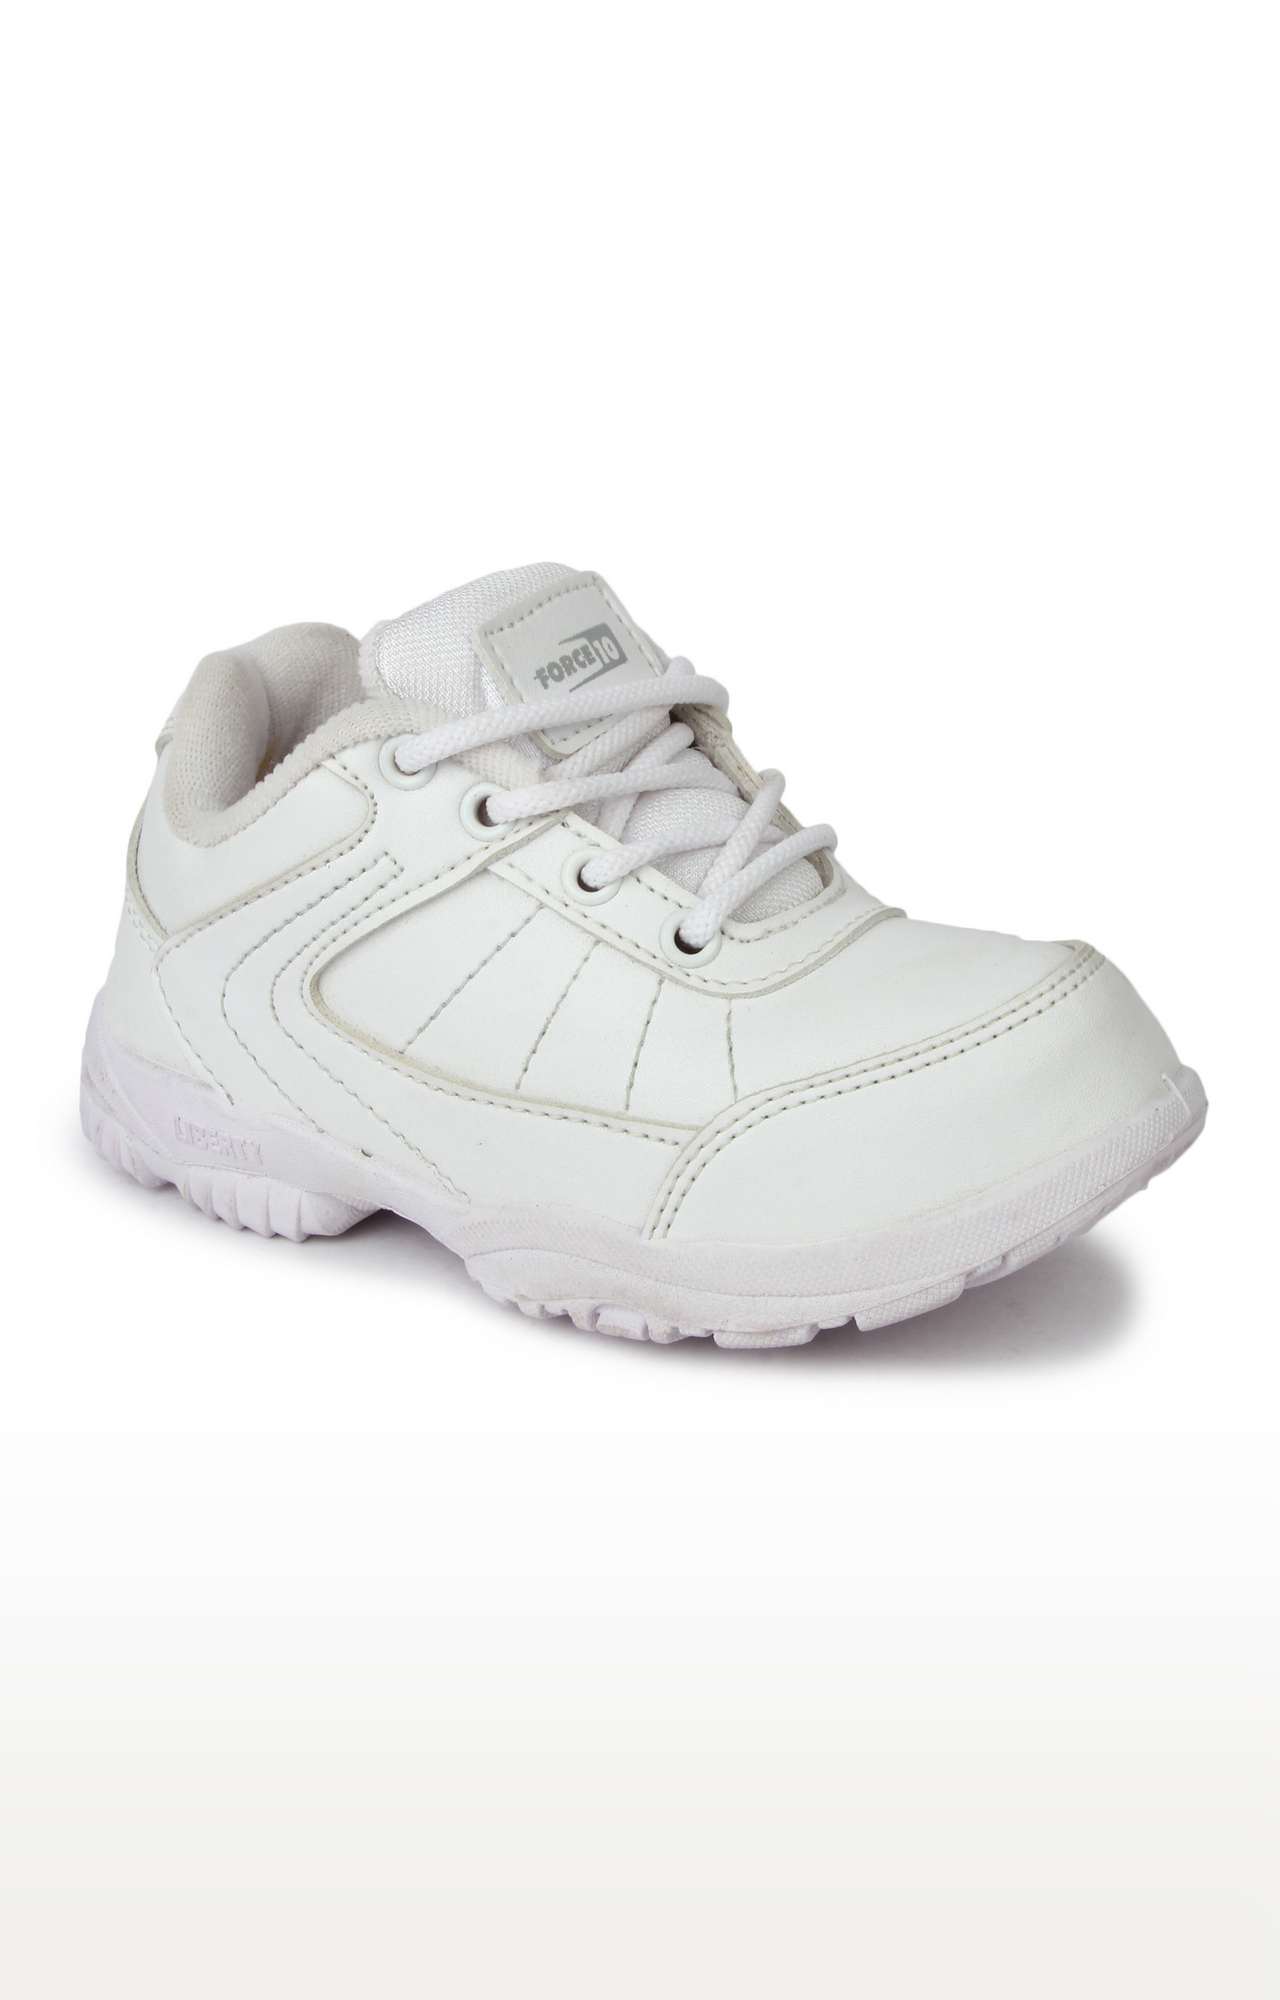 Liberty | Prefect by Liberty Unisex White Indoor Sports Shoes